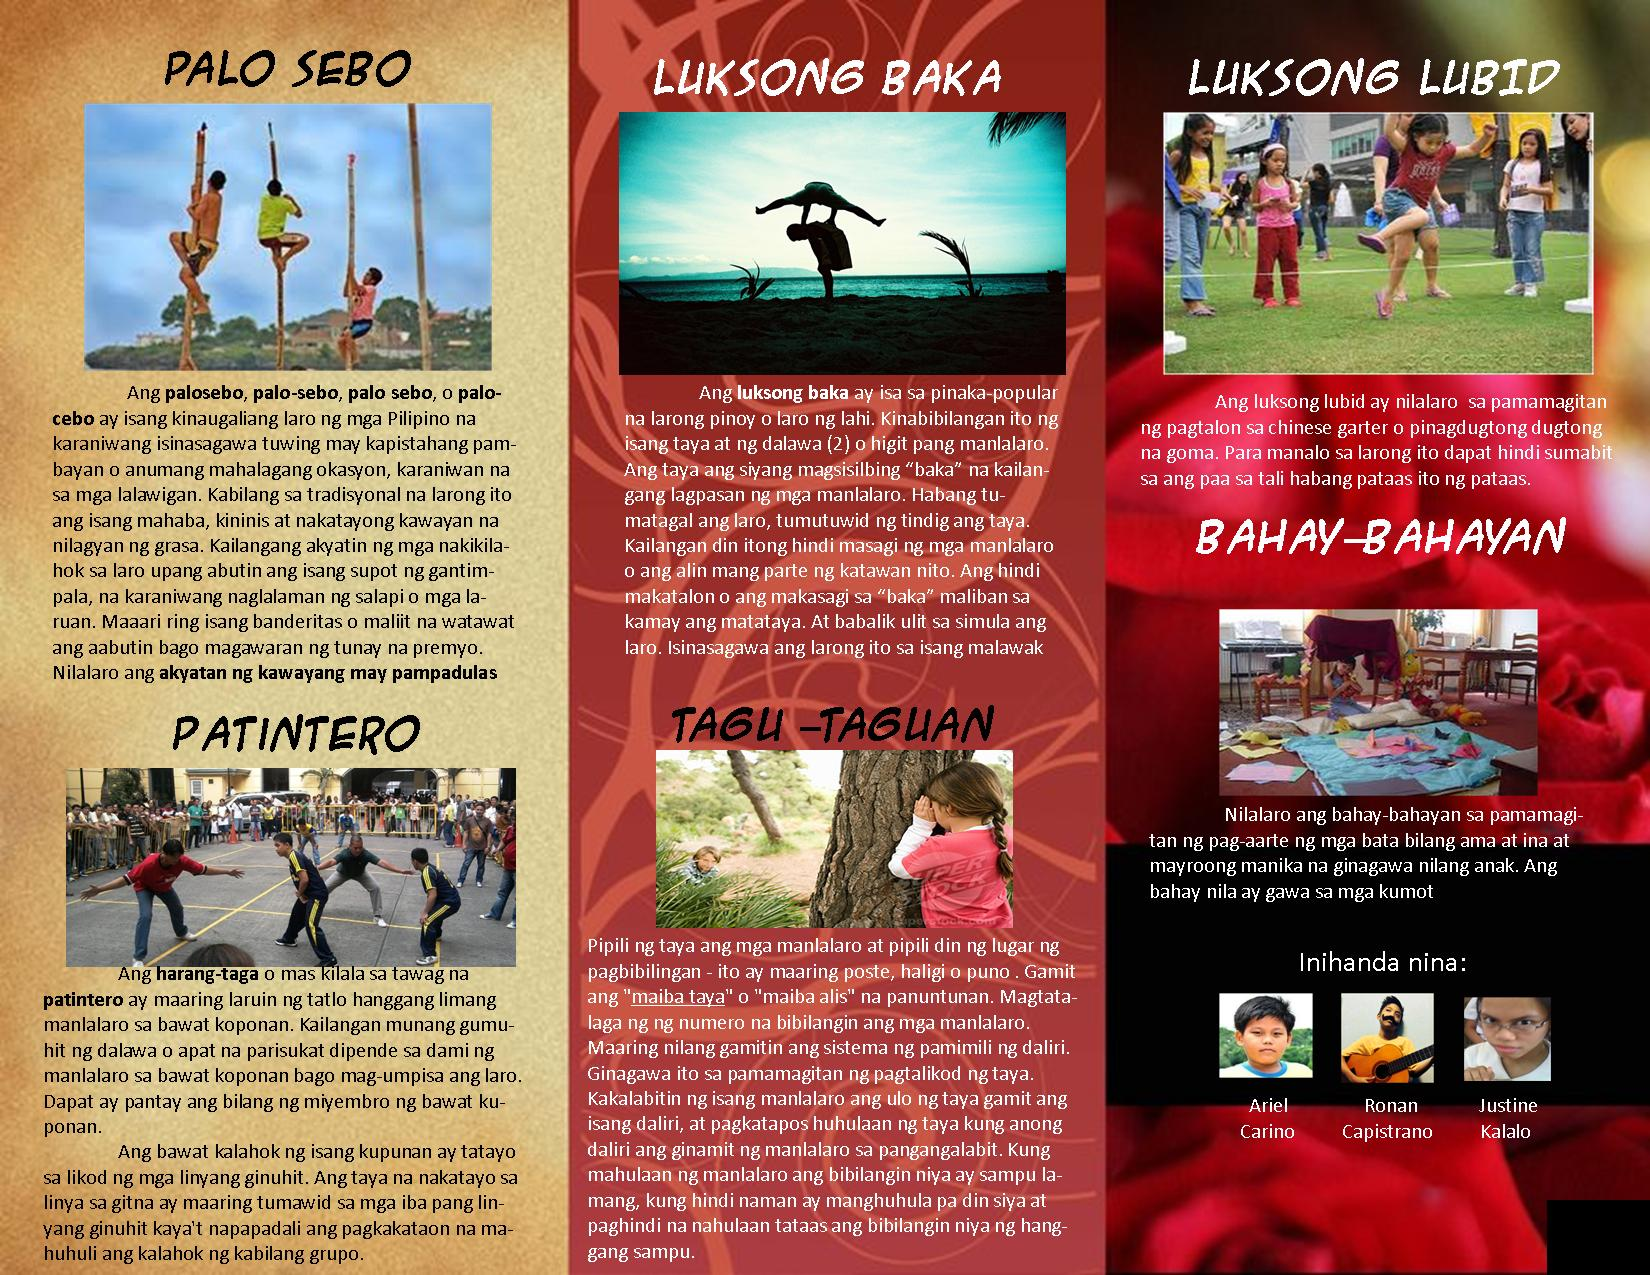 Tourist Attraction In Tagalog   Traveling morion let s explore     View Images Brochure